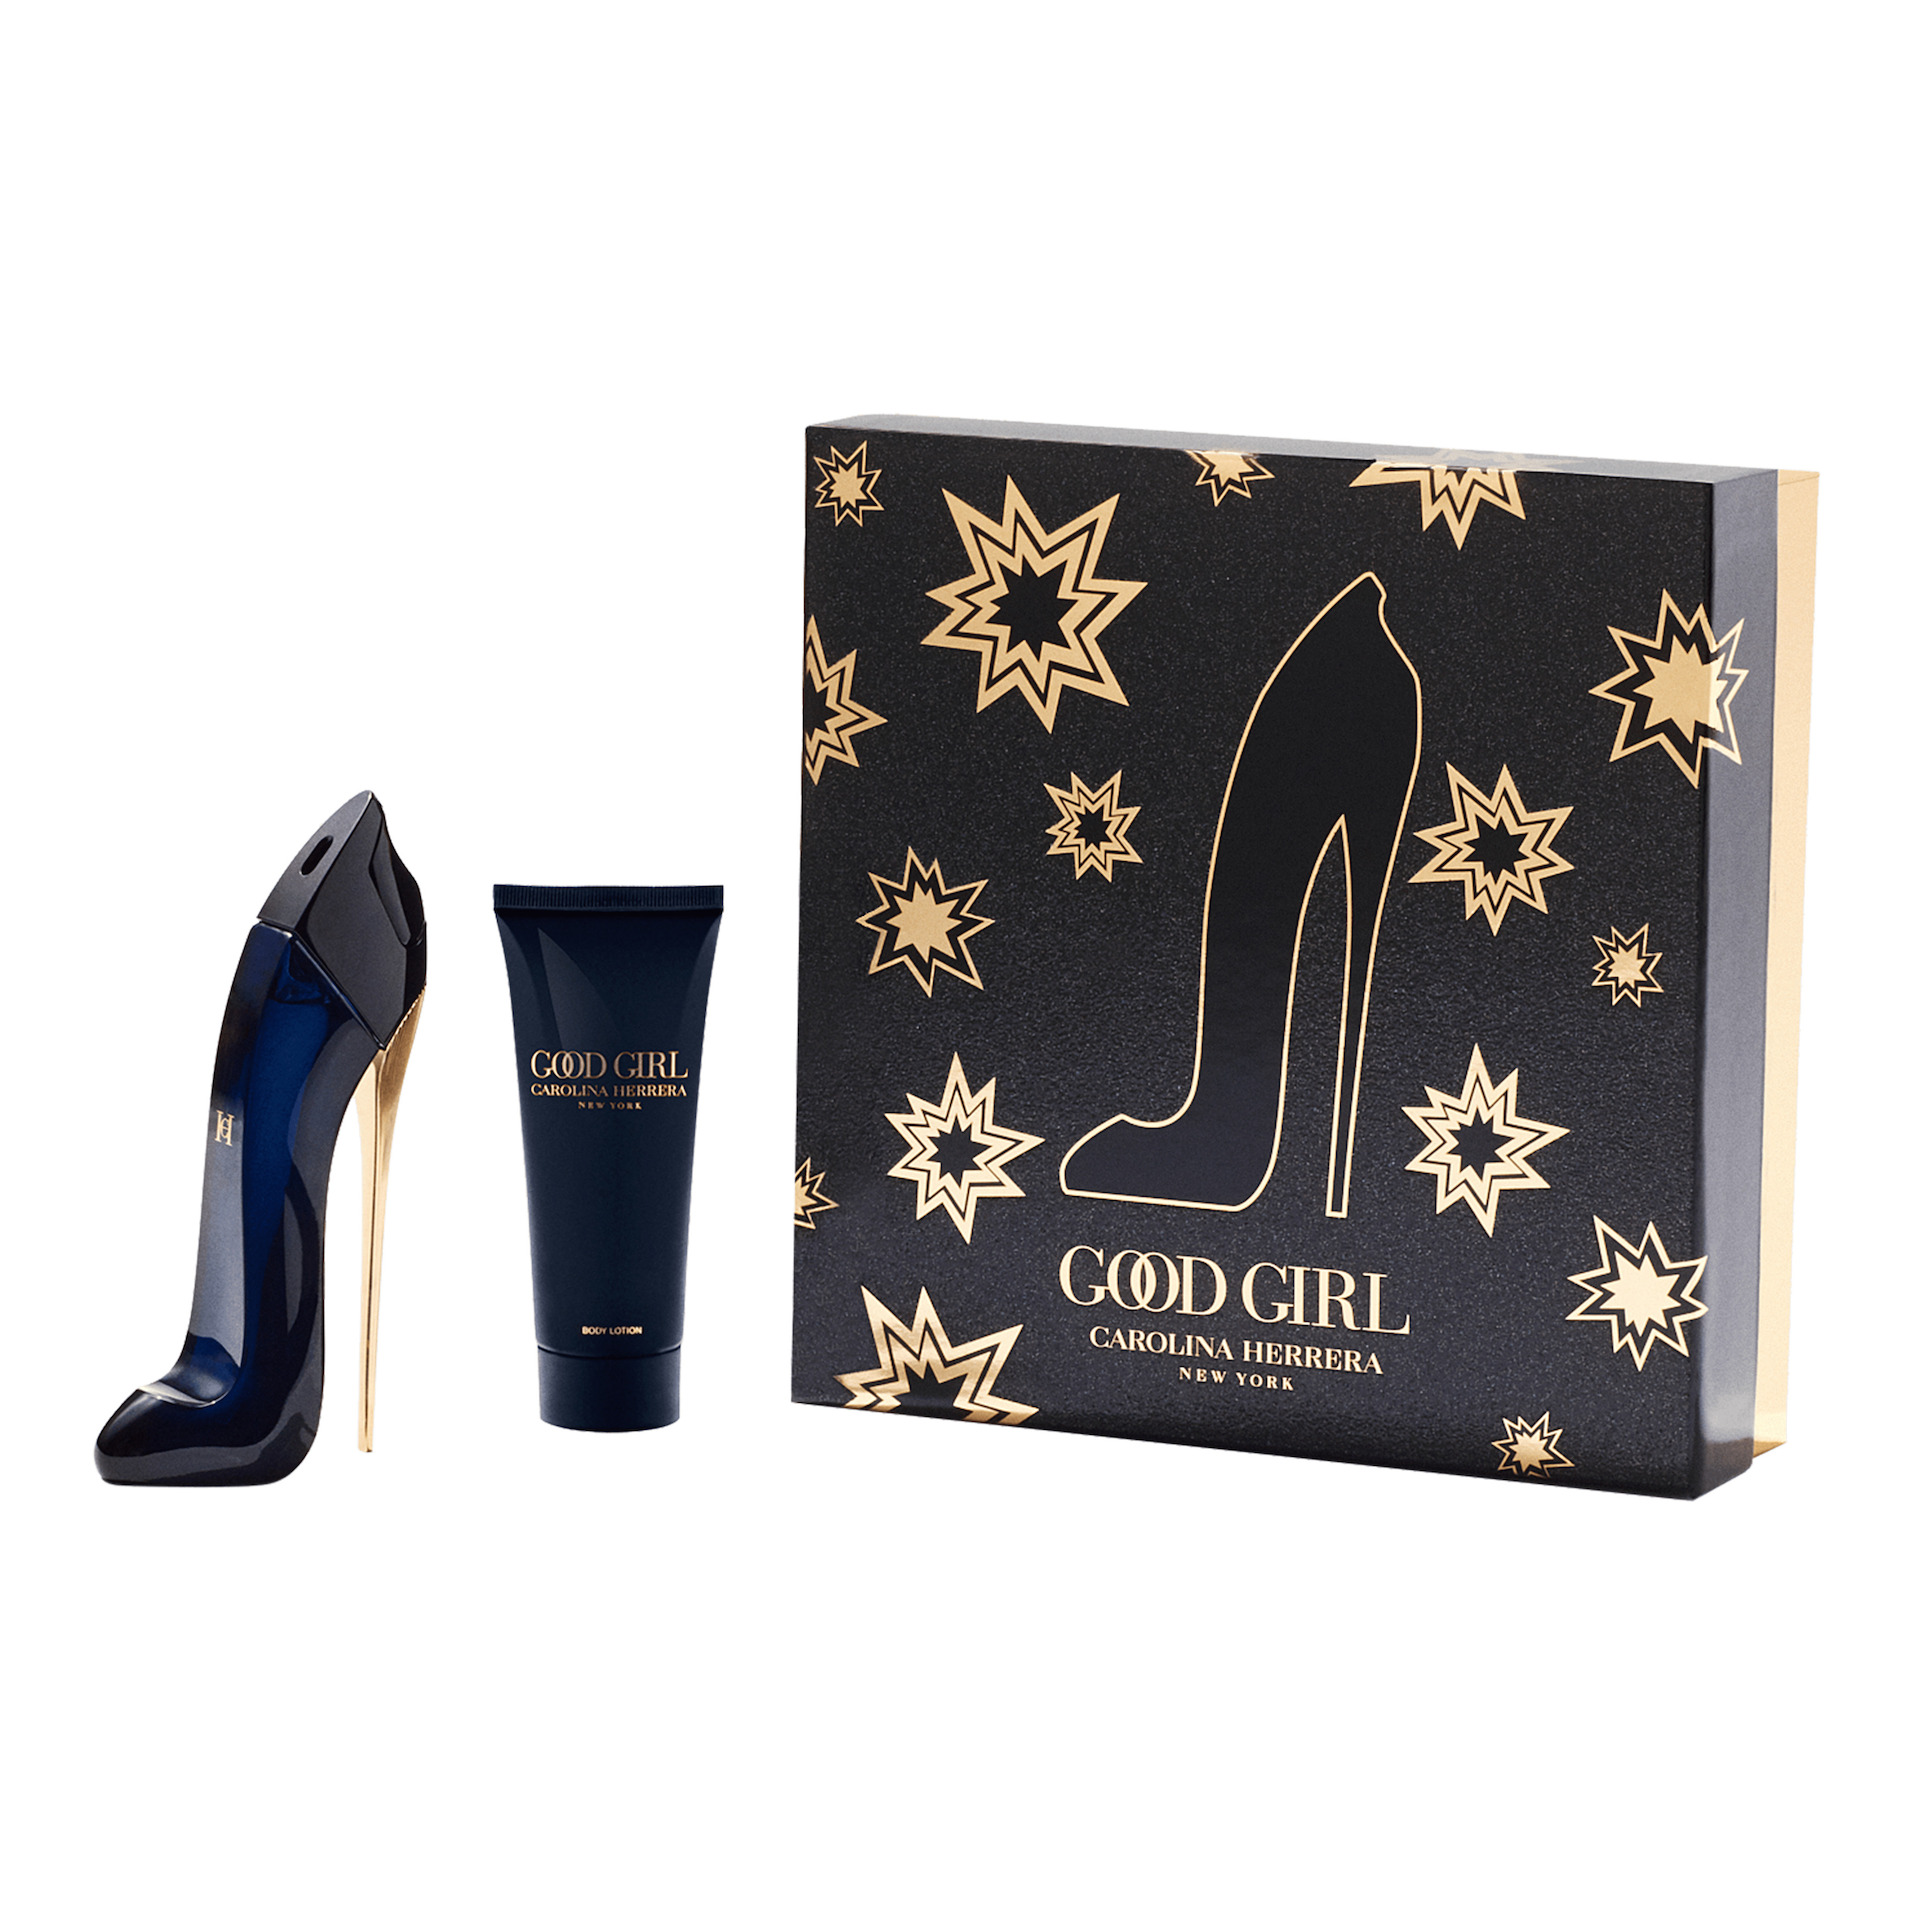 Good Girl EdP 50 ml Carolina Herrera KICKS